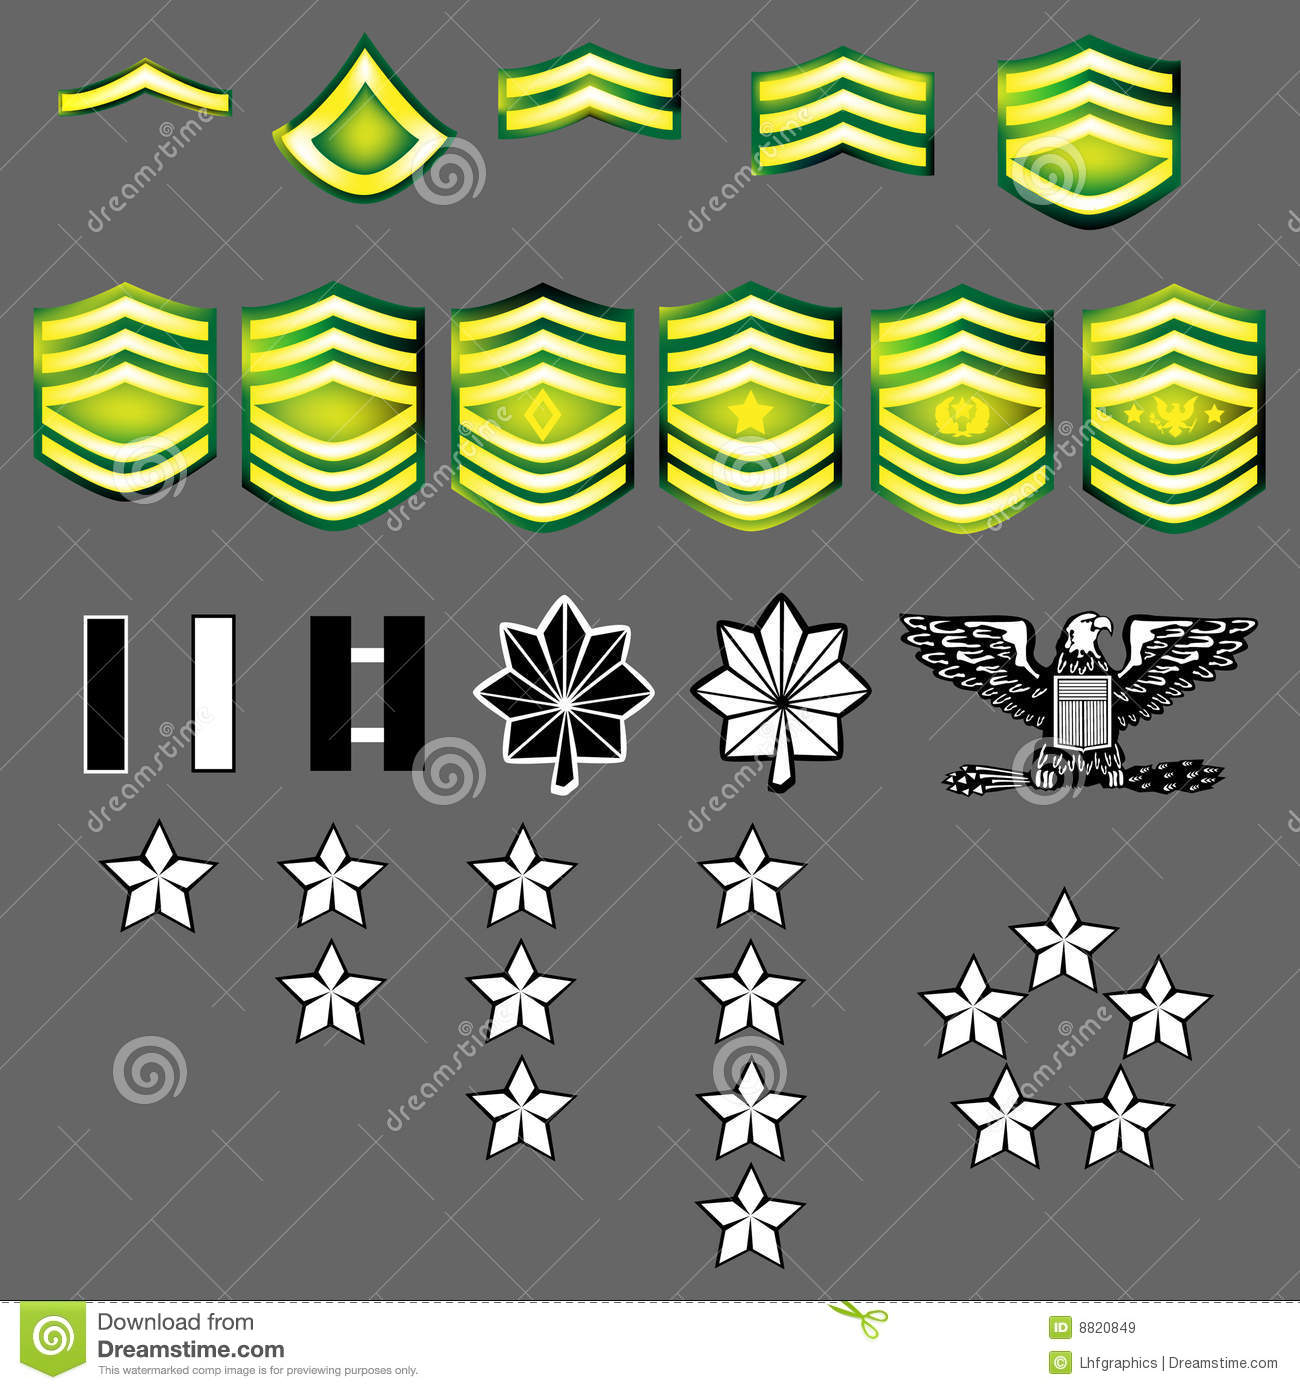 Us Army Rank Insignia Stock Vector Illustration Of Medal 8820849